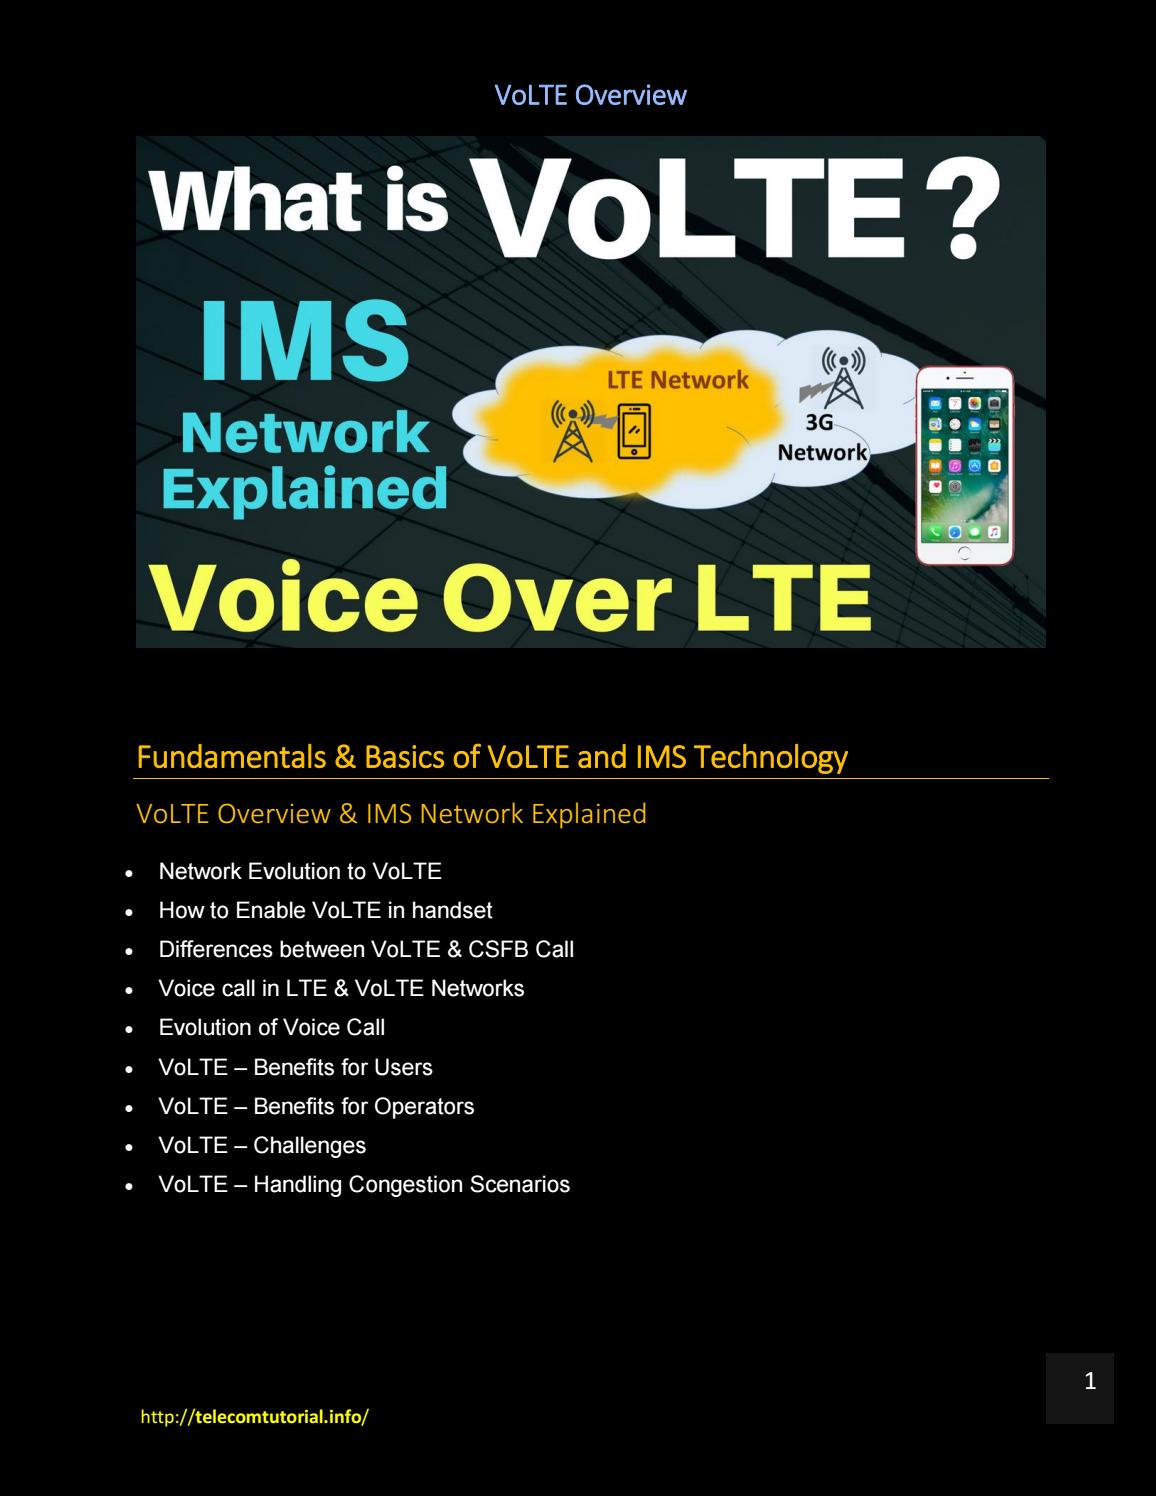 VoLTE Voice over LTE Explained - Complete End to End VoLTE